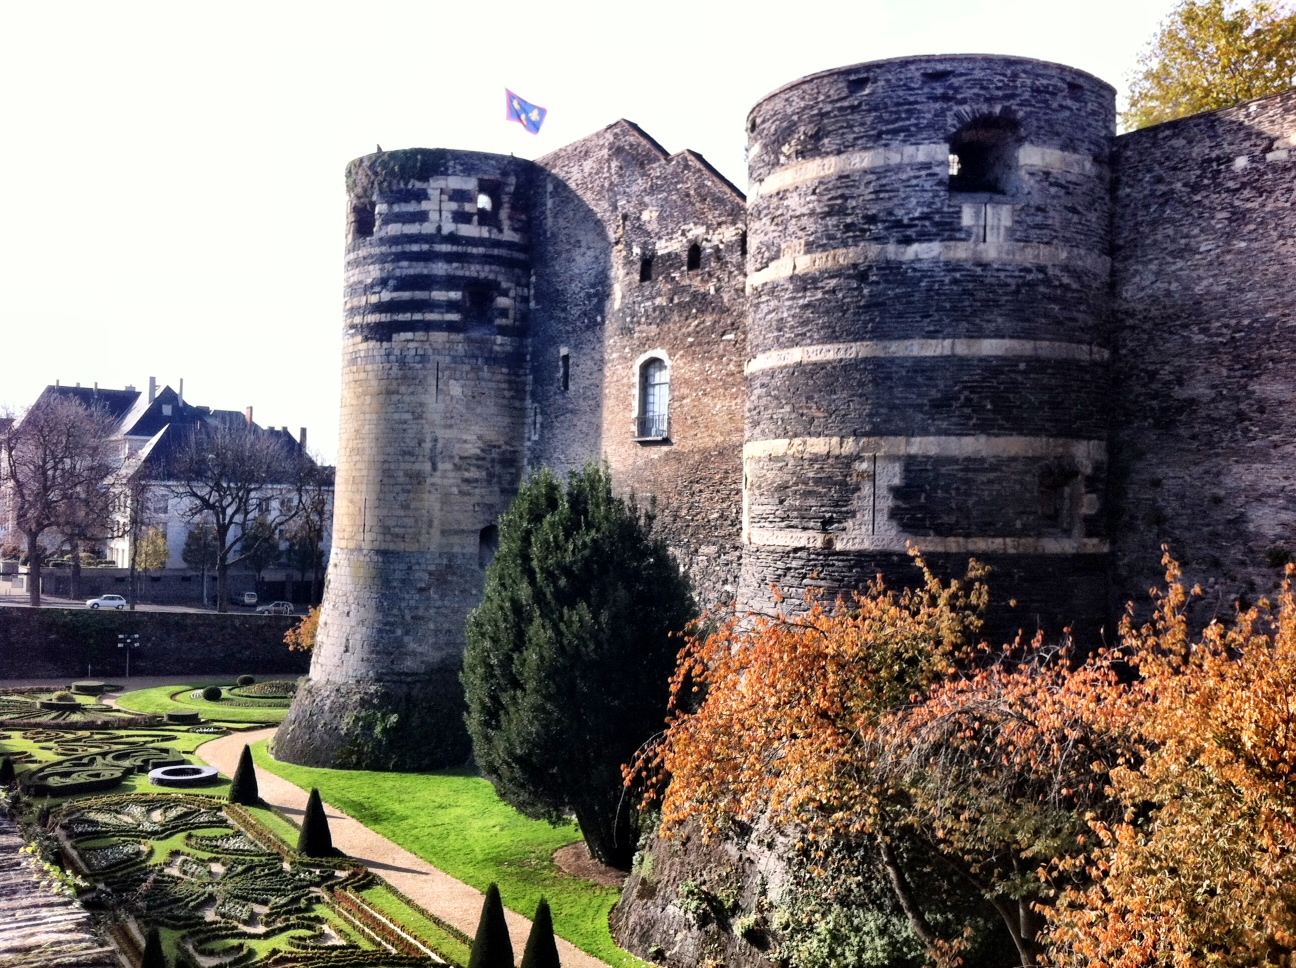 The Return to Angers